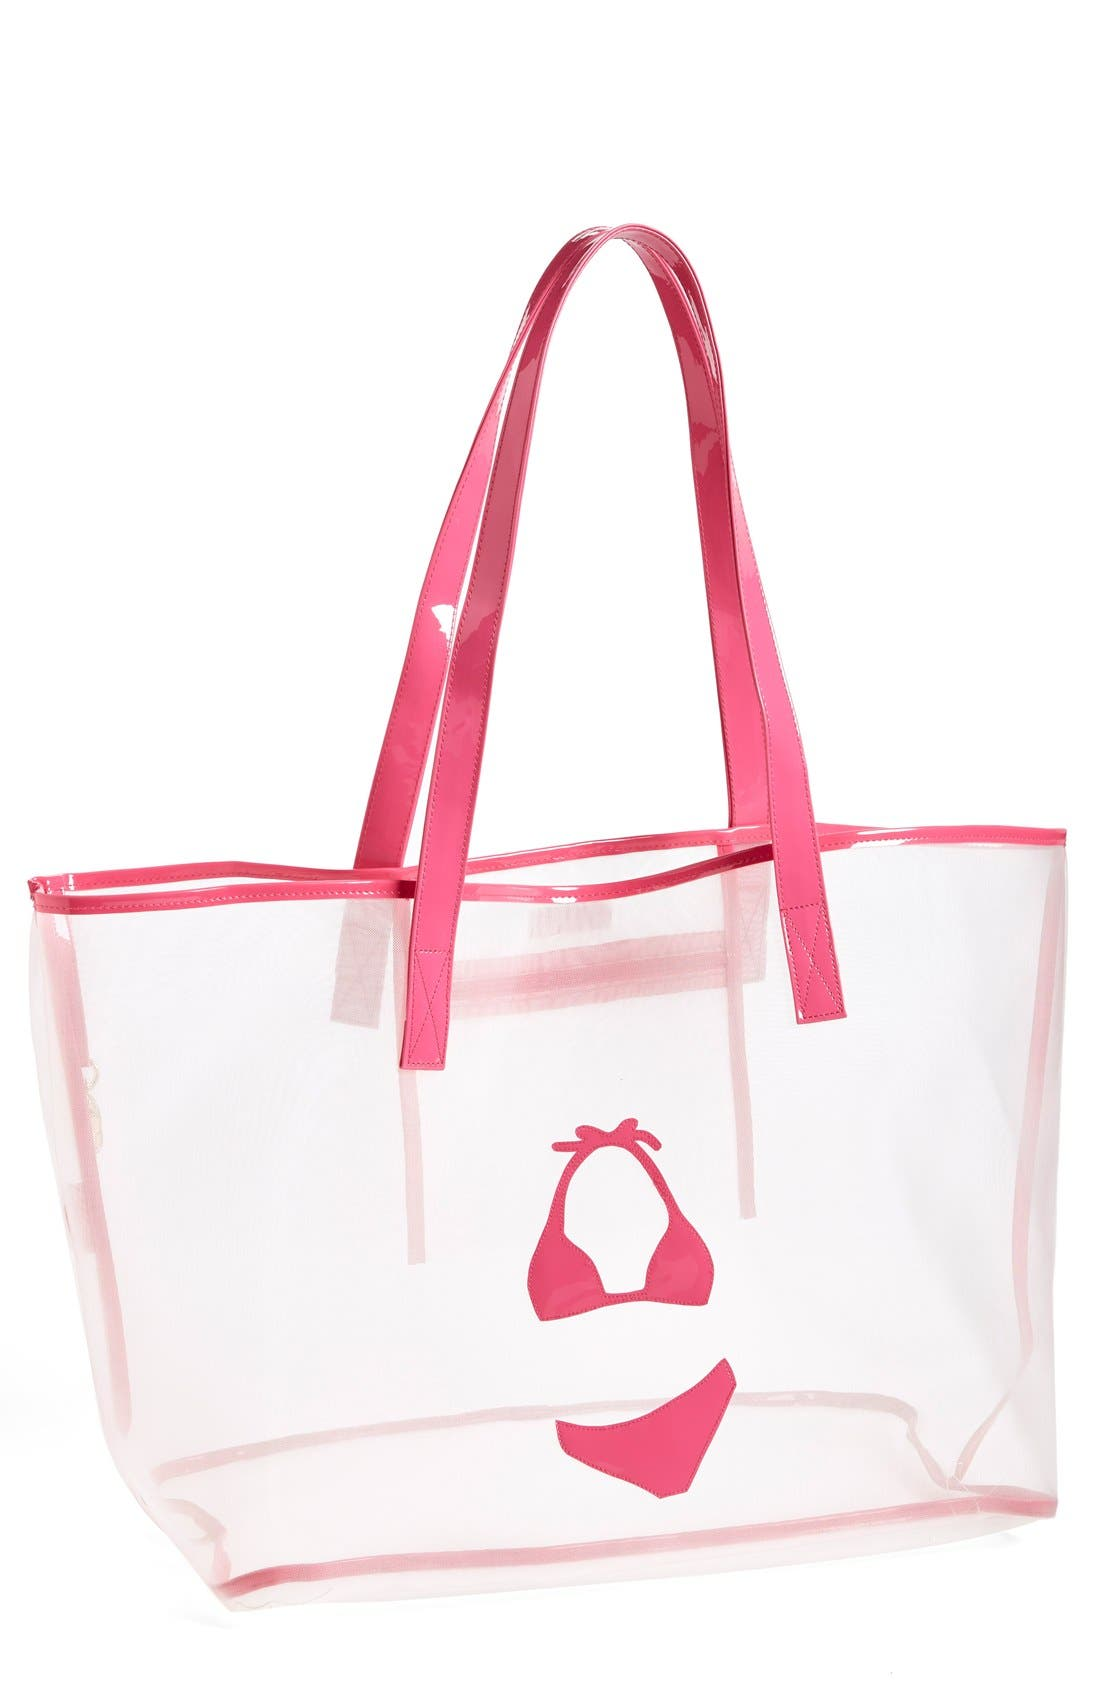 Alternate Image 1 Selected - Lolo 'Madison - Bikini' Mesh Tote